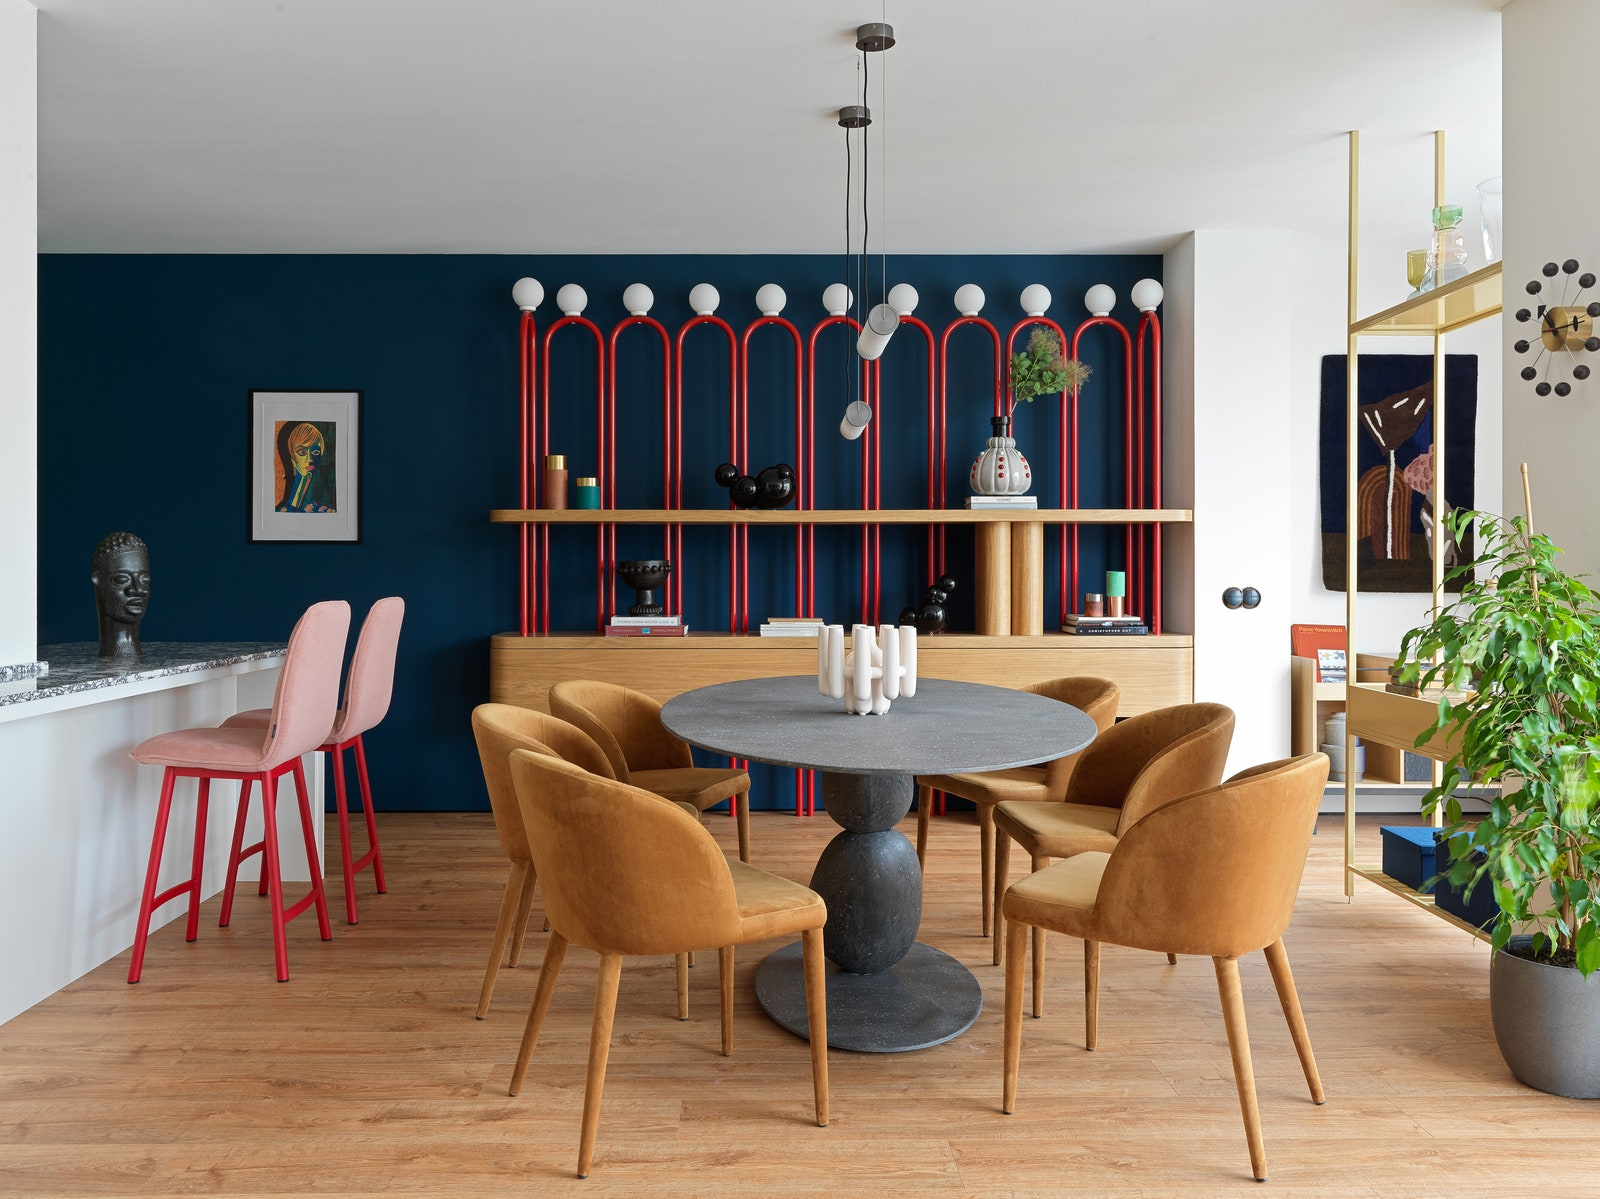 200 .    .   Mobliberica   Mogg   AM.PM           Norr11   Vitra              Lithart gallery  Tradition           ...